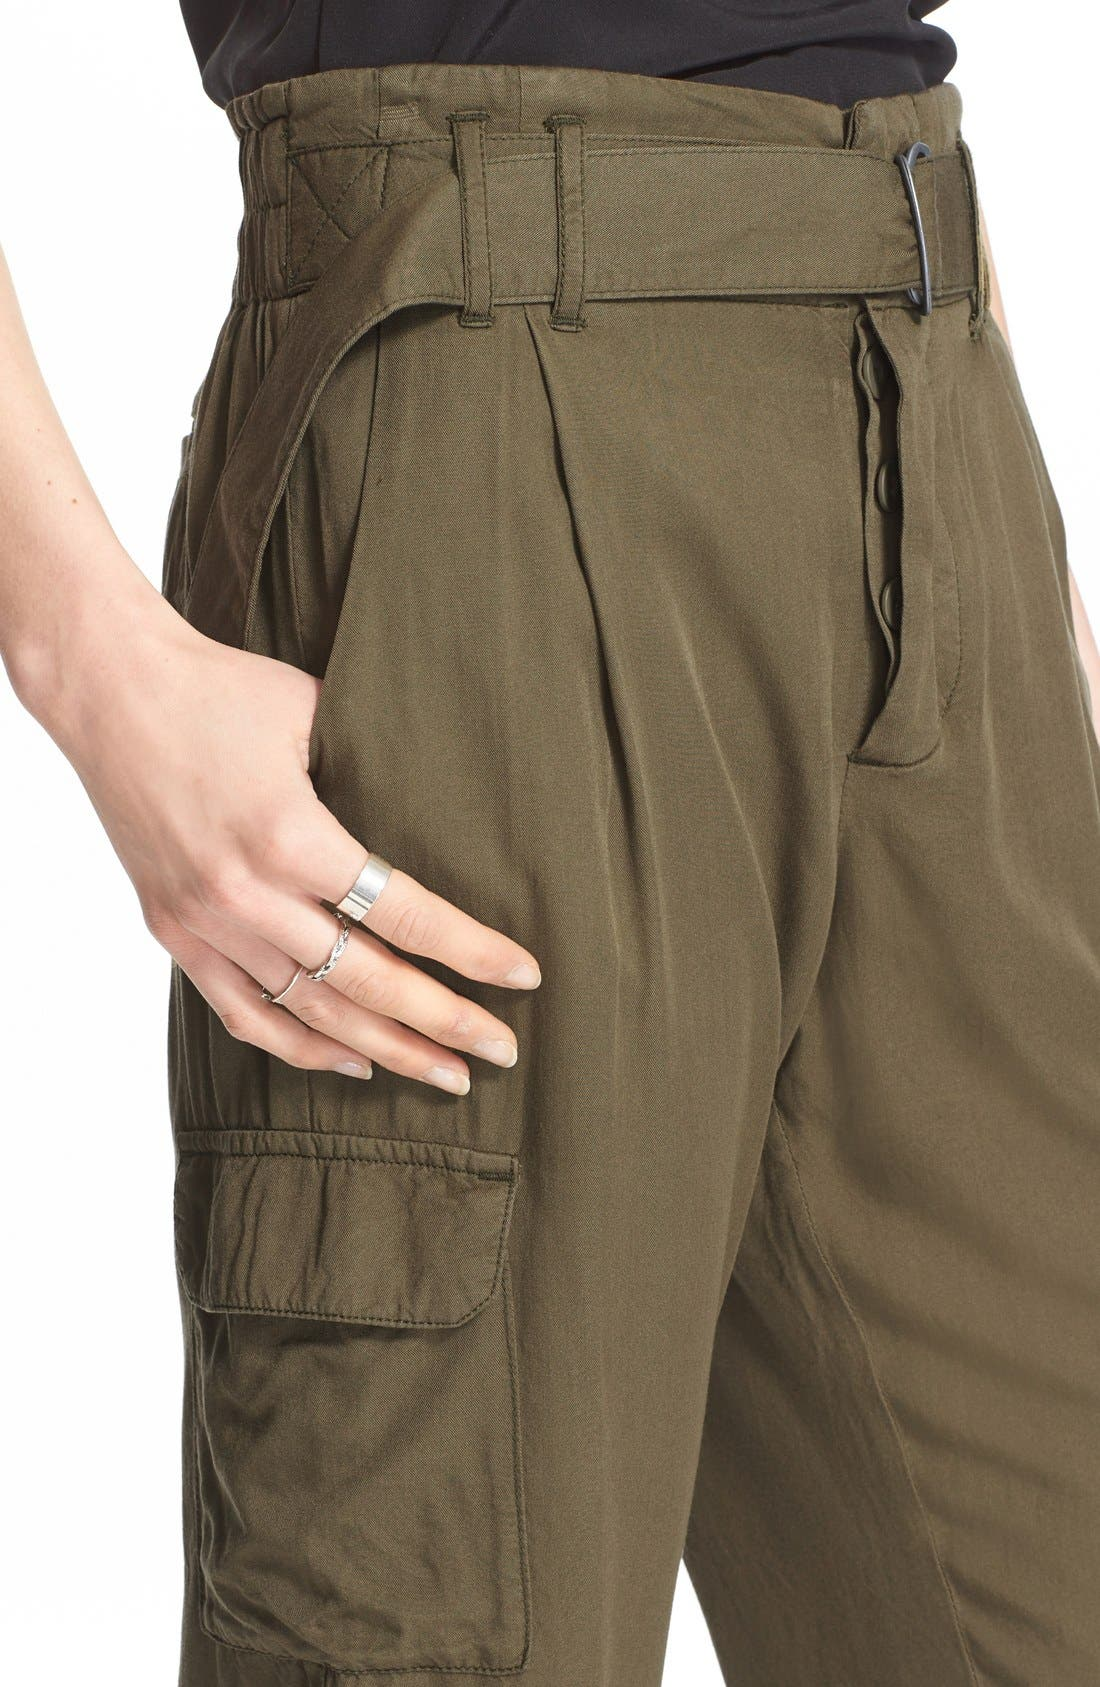 Crop Cargo Pants,                             Alternate thumbnail 4, color,                             Army